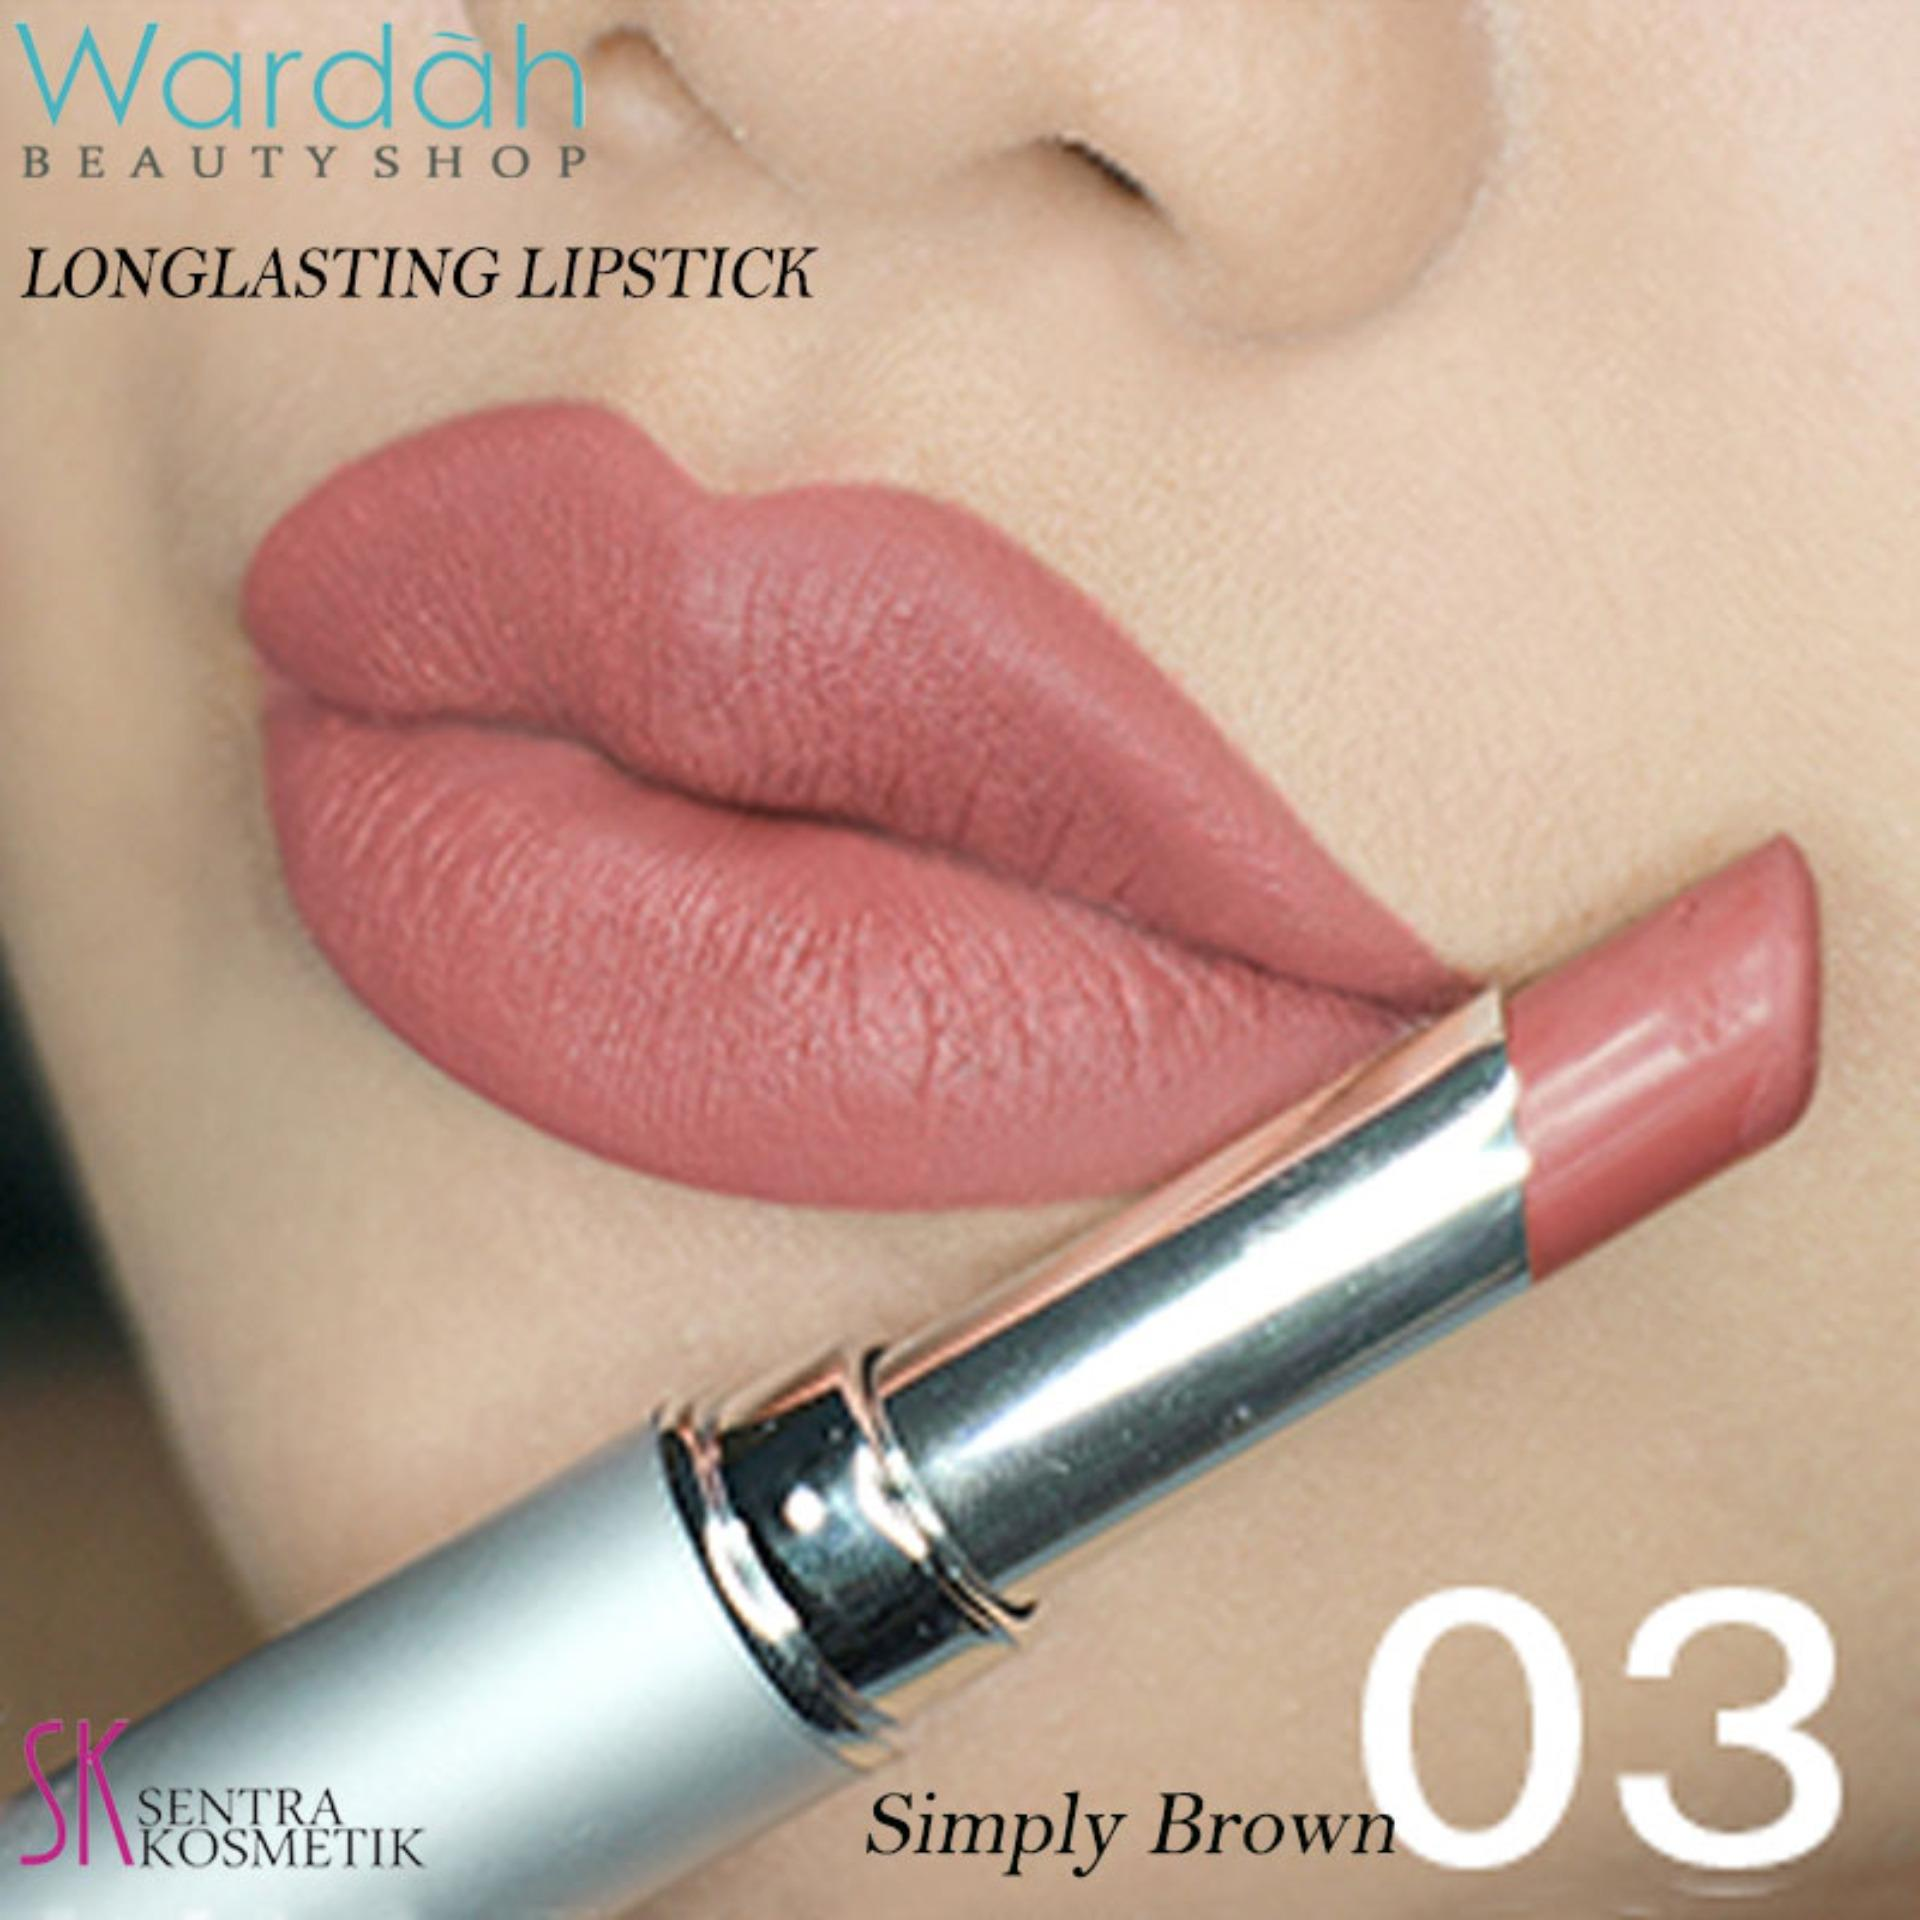 Wardah LONGLASTING Lipstick No.03 Simply Brown